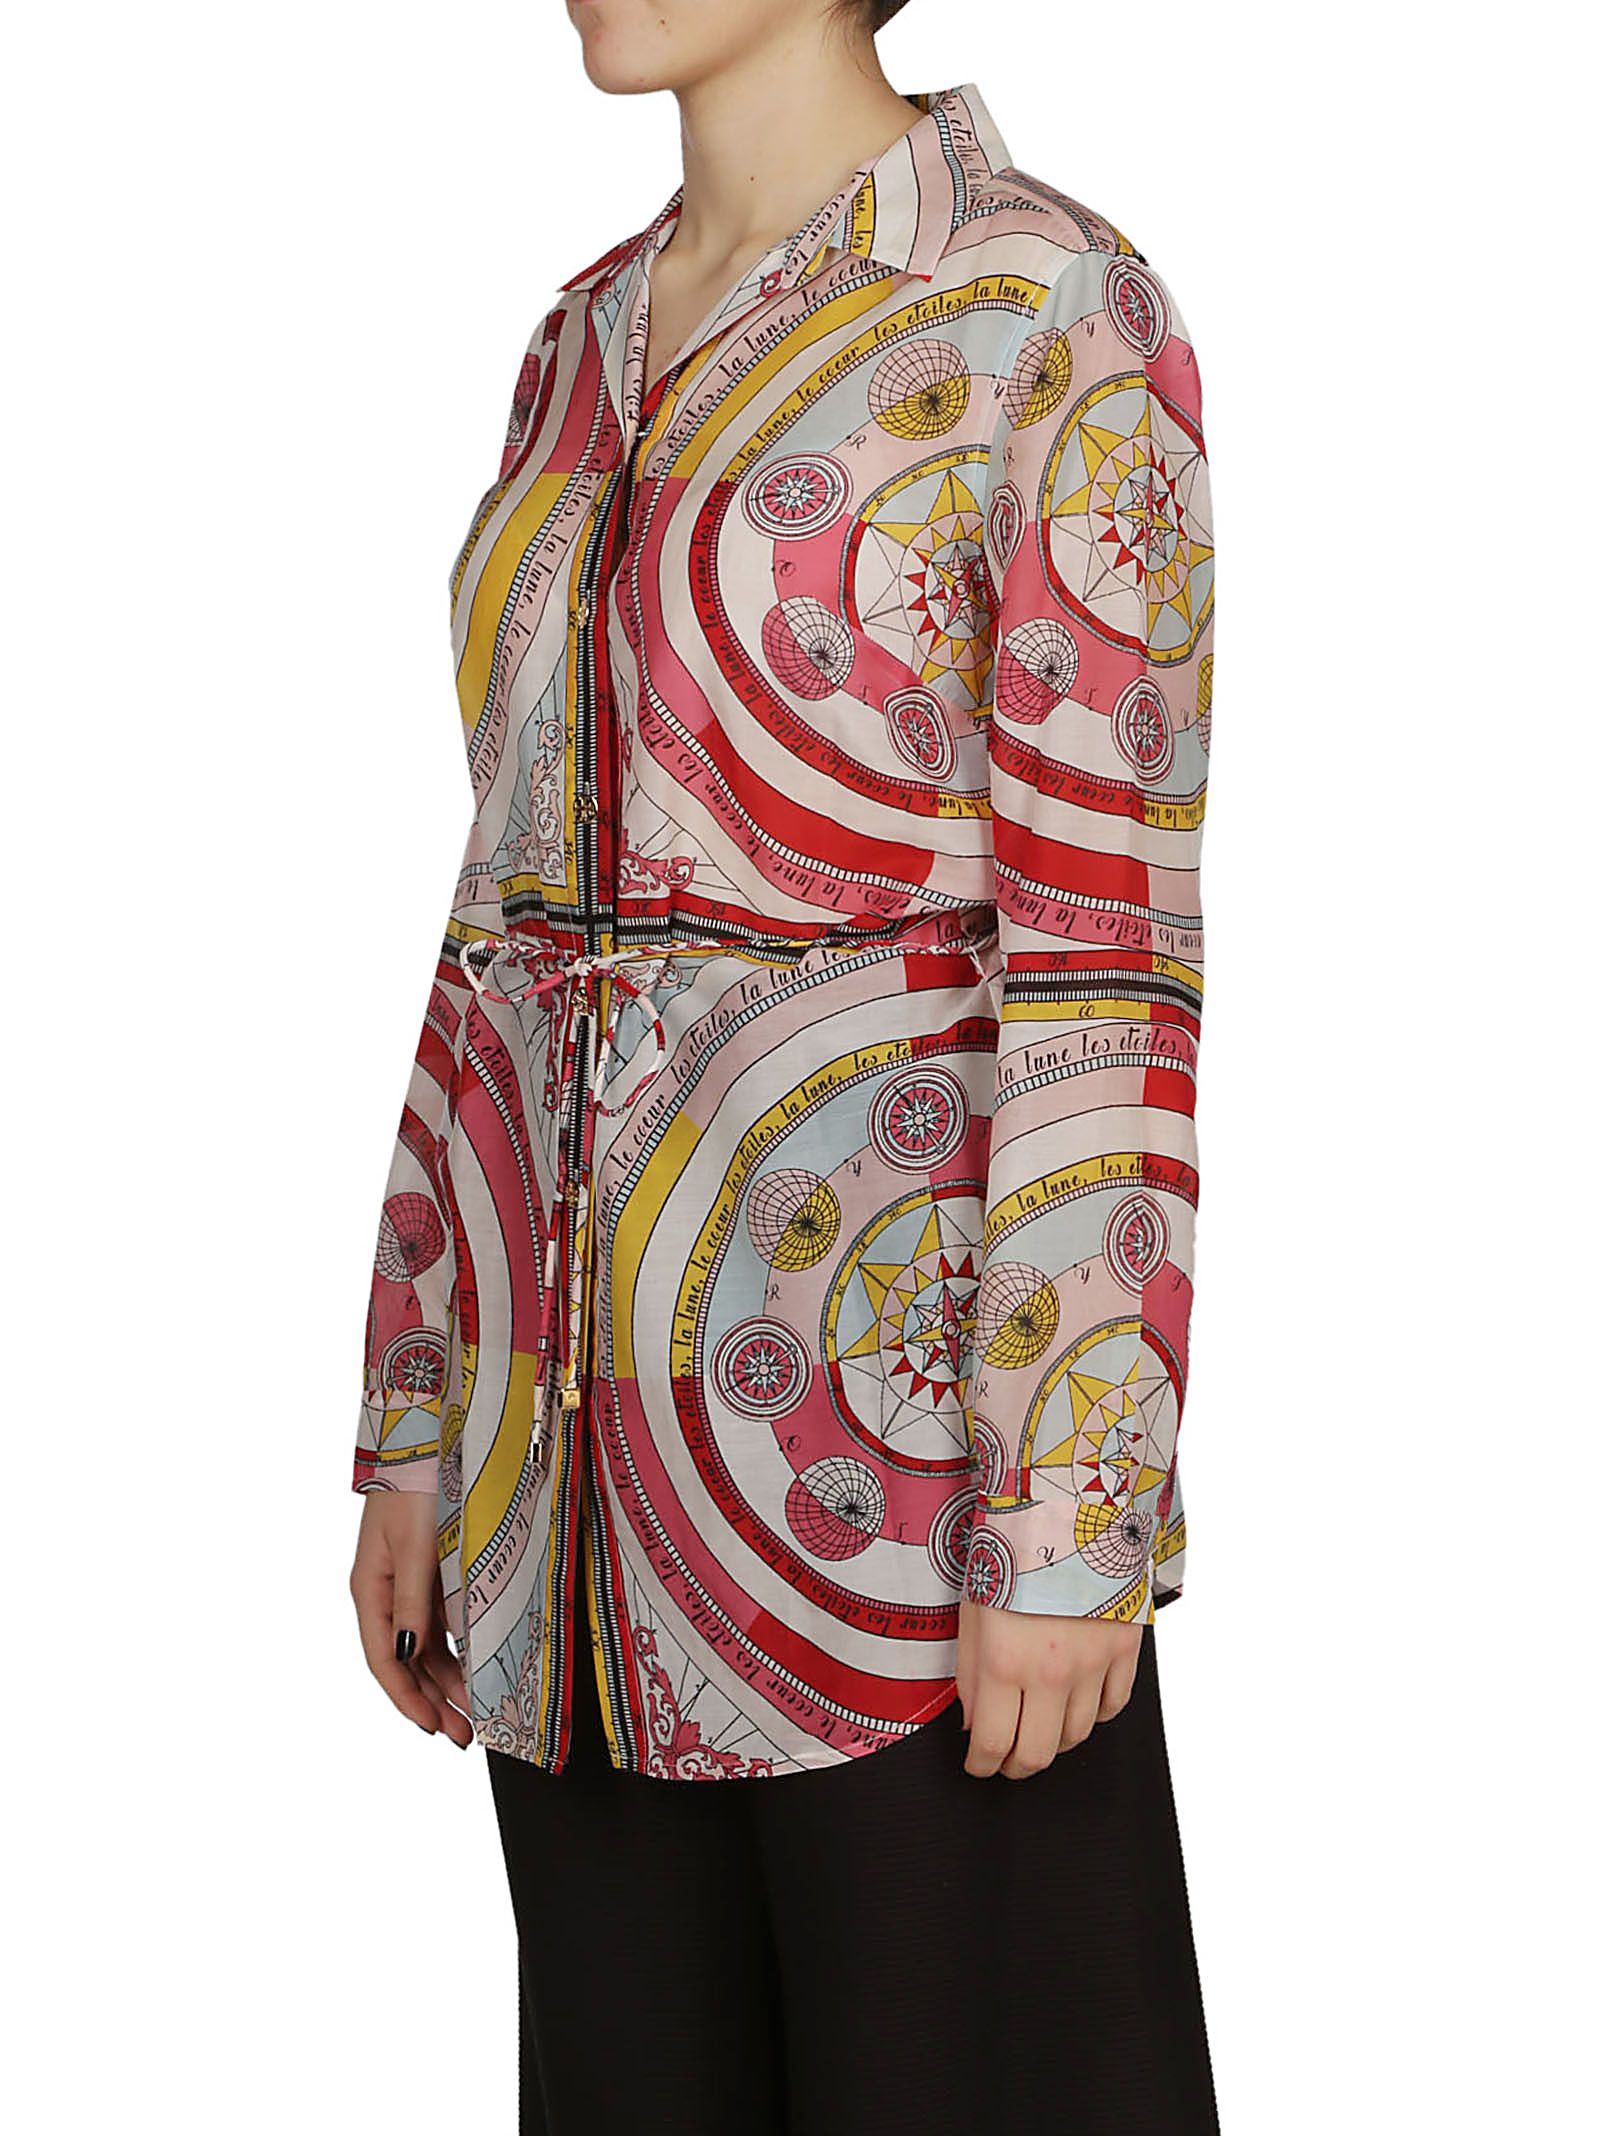 18236a13252 Tory Burch Tory Burch Printed Long Shirt - Fantasia - 10788277